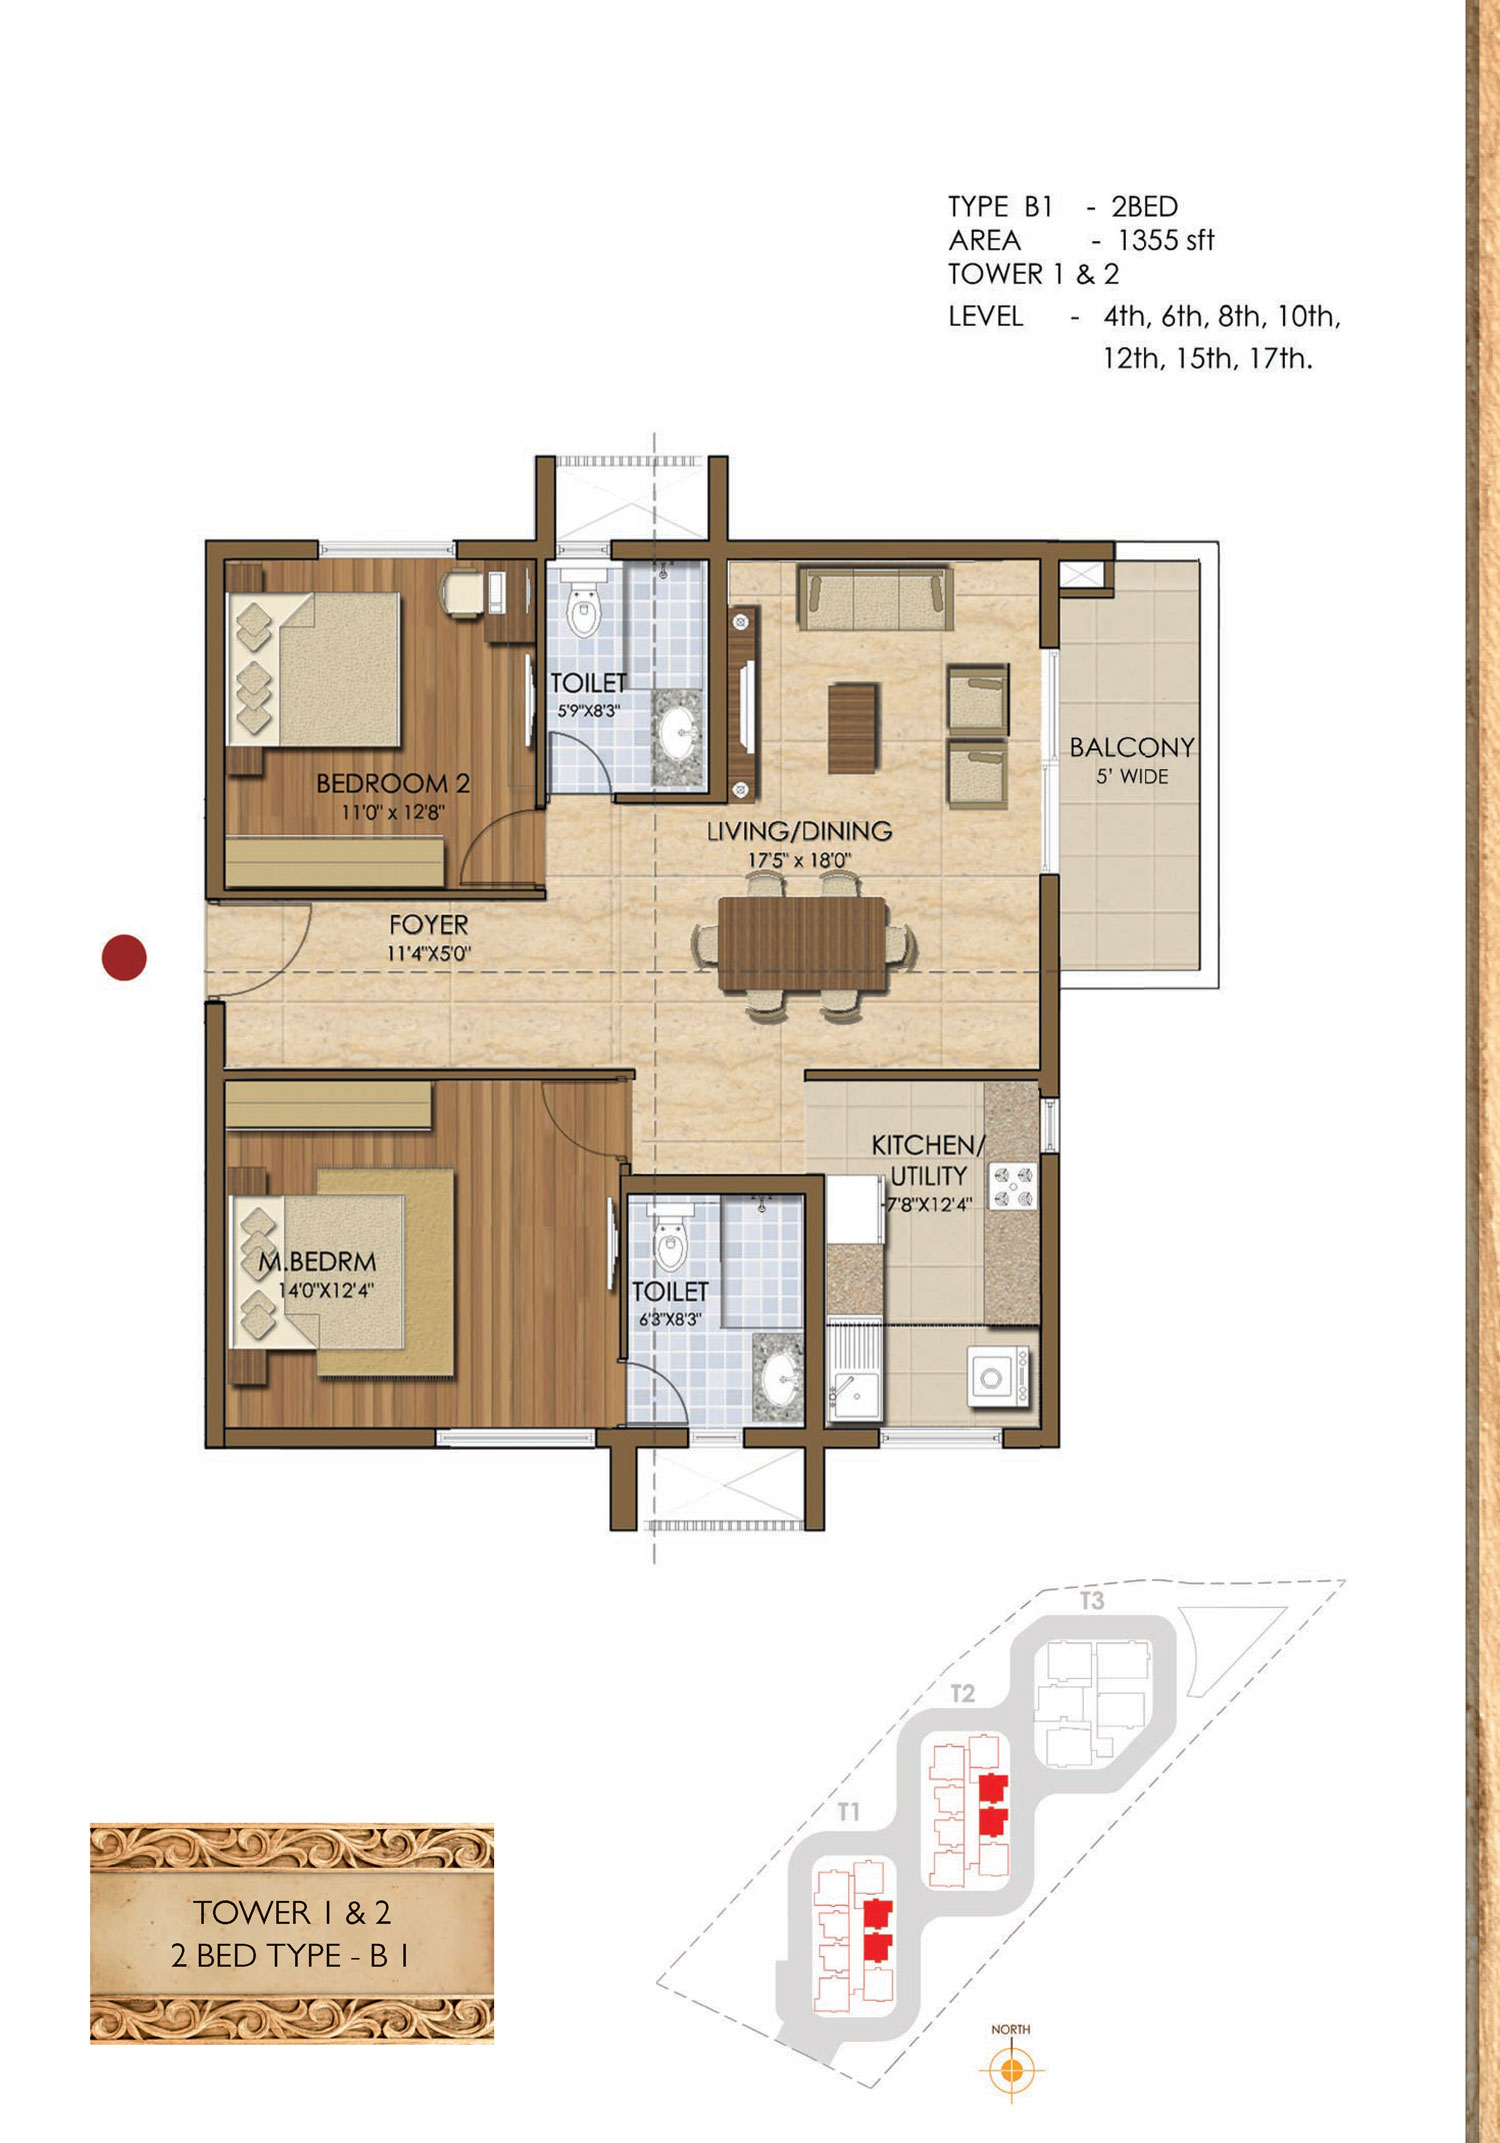 Type B1- 2 Bed - 1355 Sq Ft